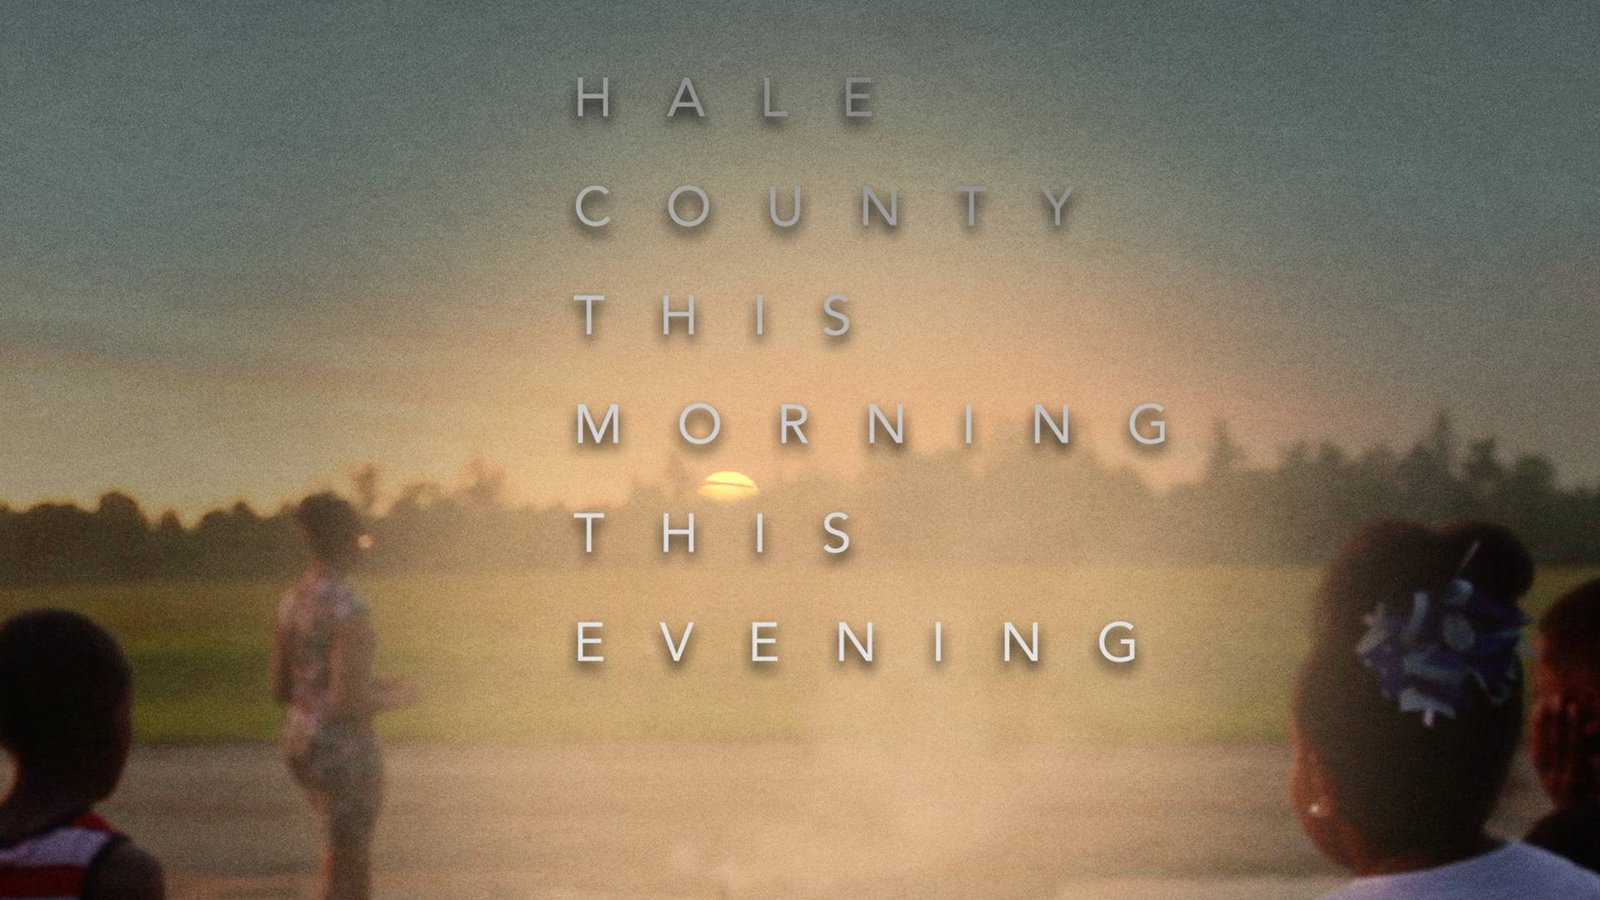 Hale County This Morning, This Evening - An Intimate Portrait of the Lives of African Americans in the South